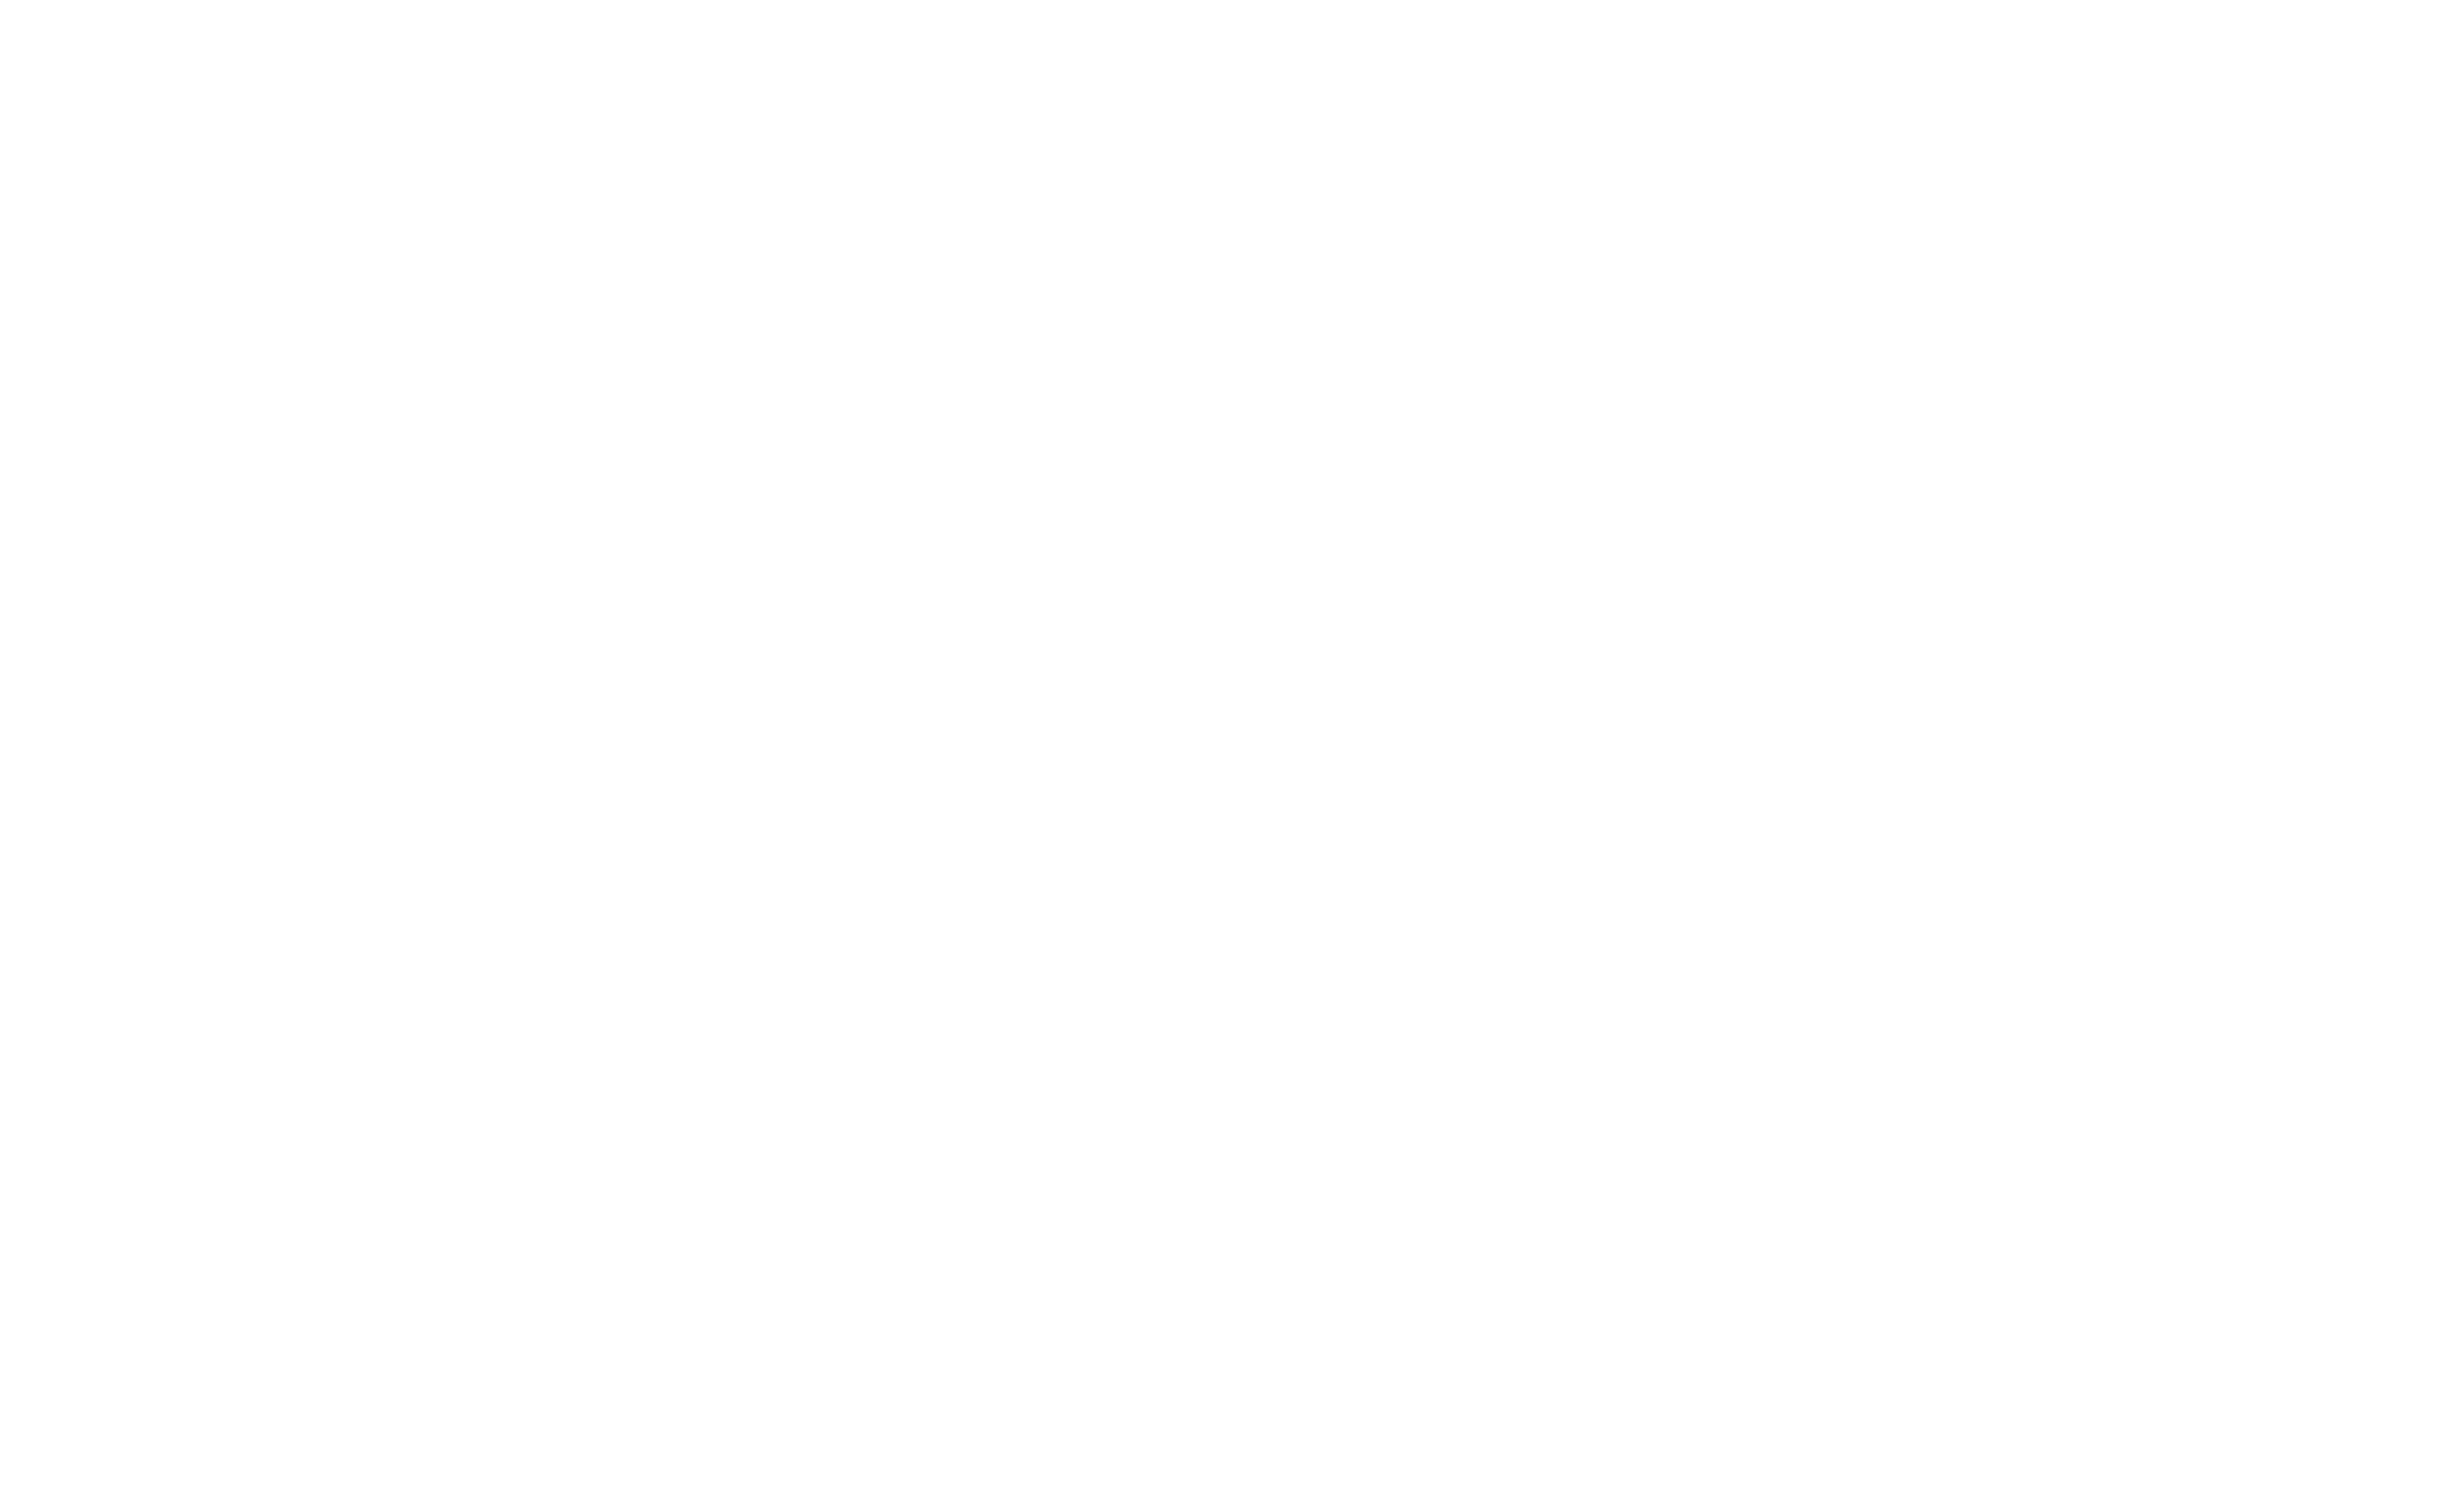 The_Laurence_Kenyon_Company_Verbage-01.png